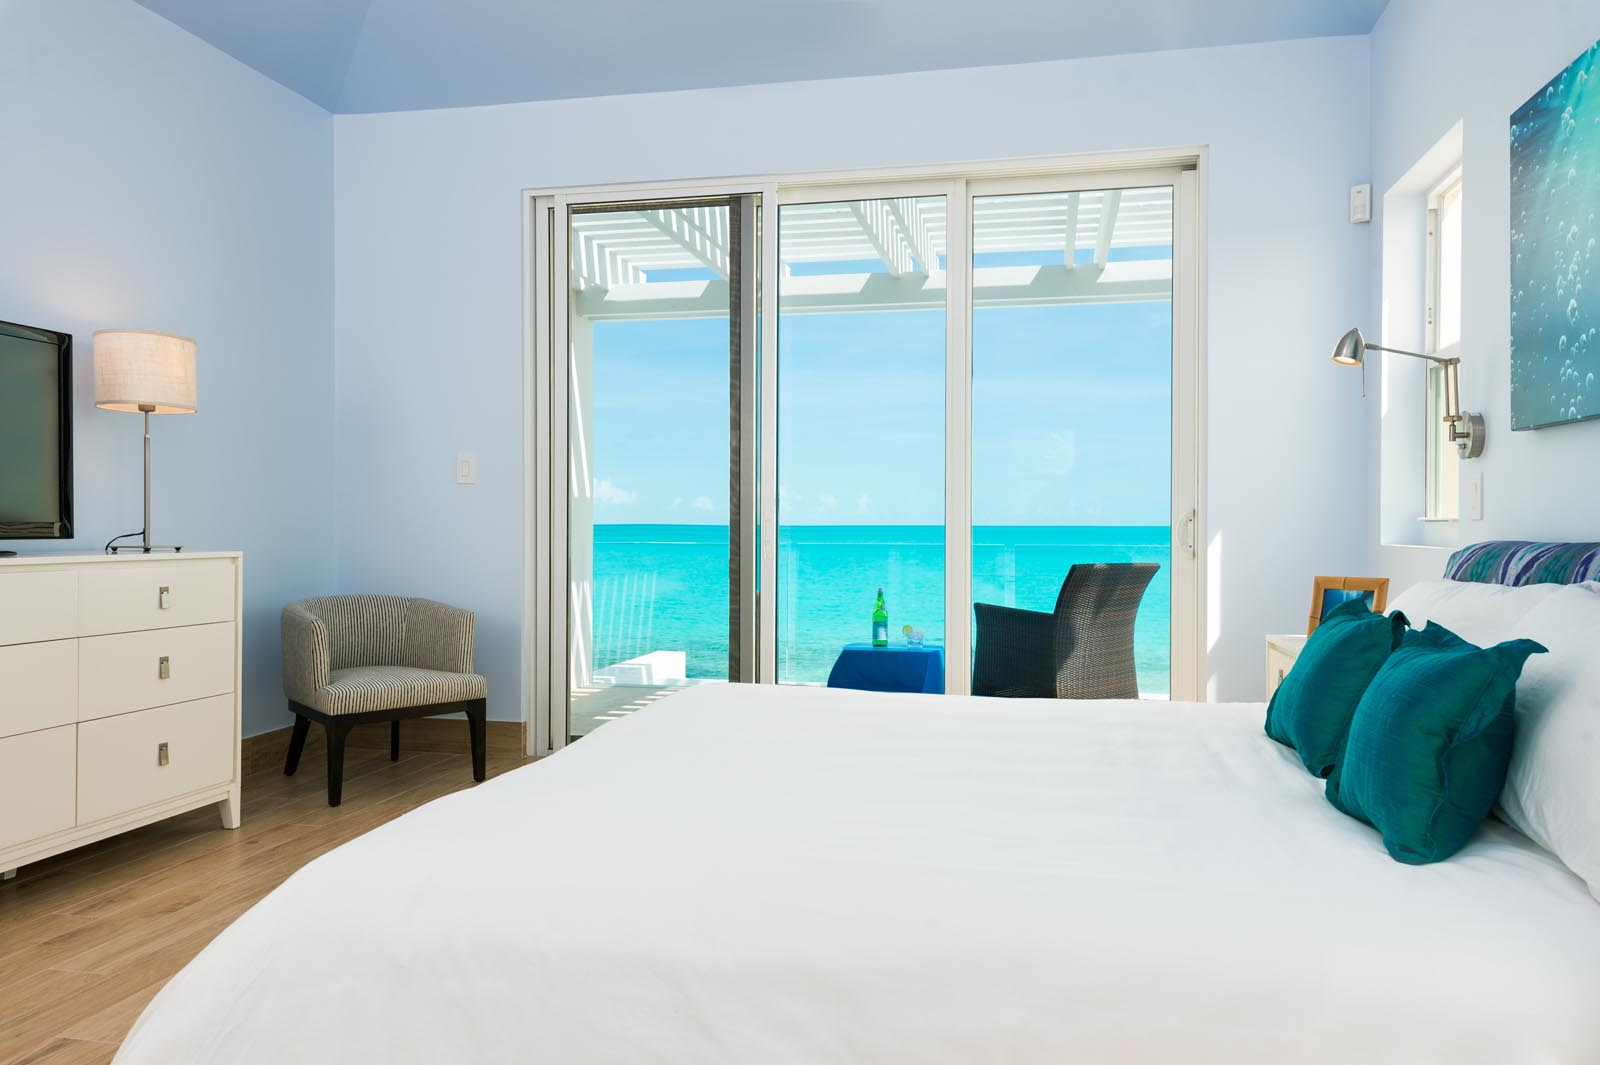 Villa Isla has 5 equal master bedrooms each with stunning ocean views